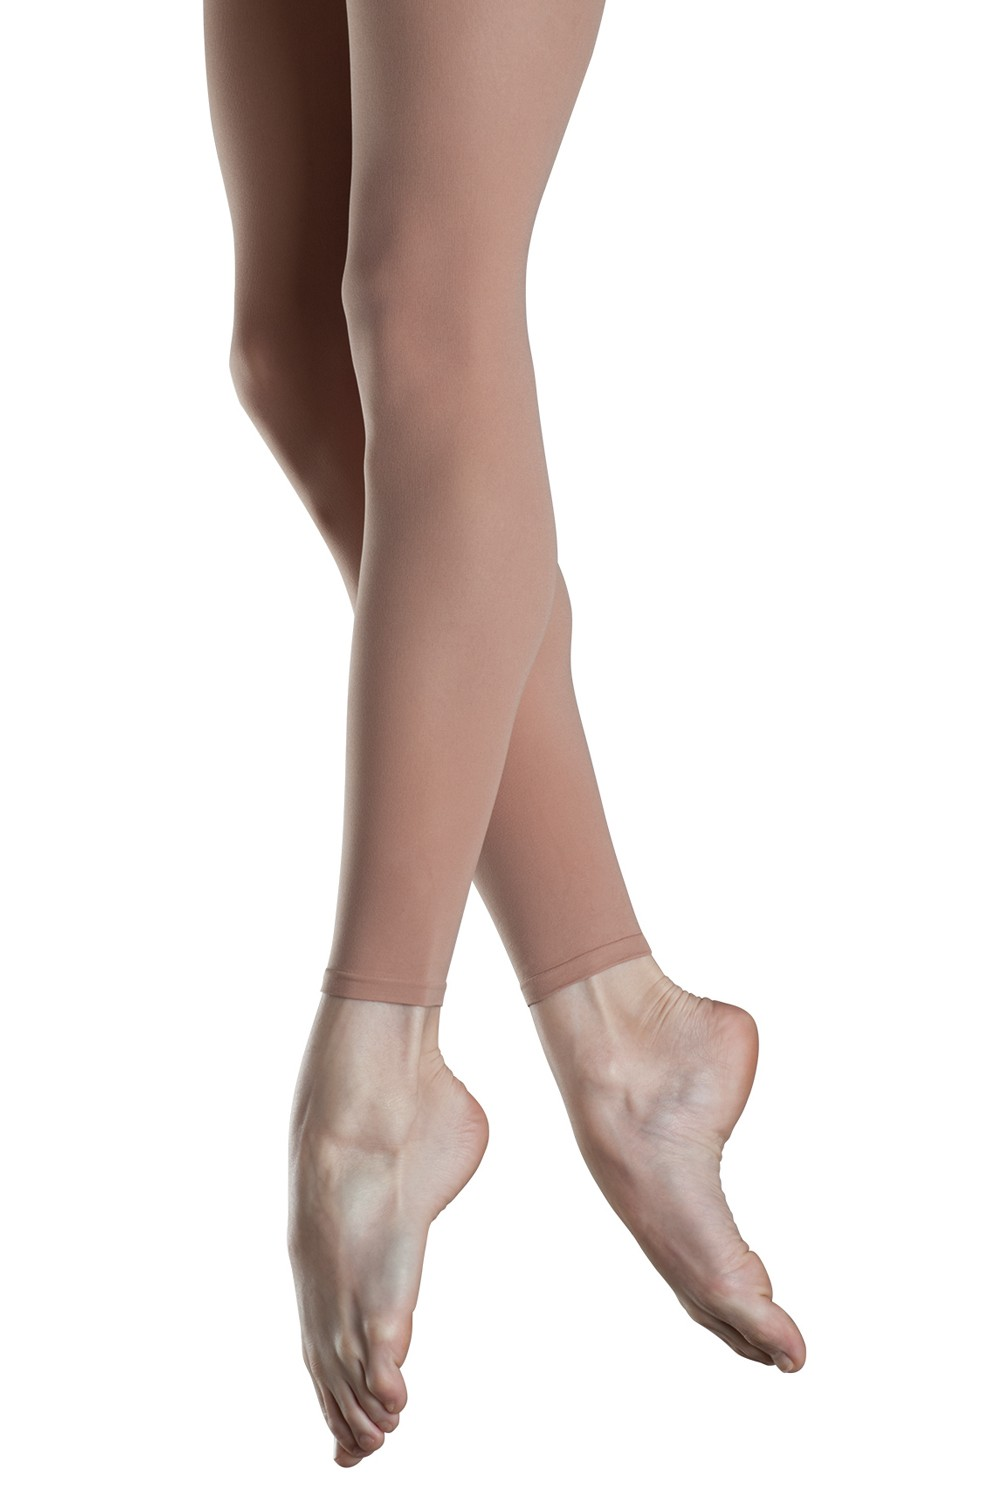 About Nexete. HIGH QUALITY: These ballet dance tights are a soft blend of 85% Nylon and 15% velvet, giving you the stretch and light support most suitable for dance classes and baby ballet.